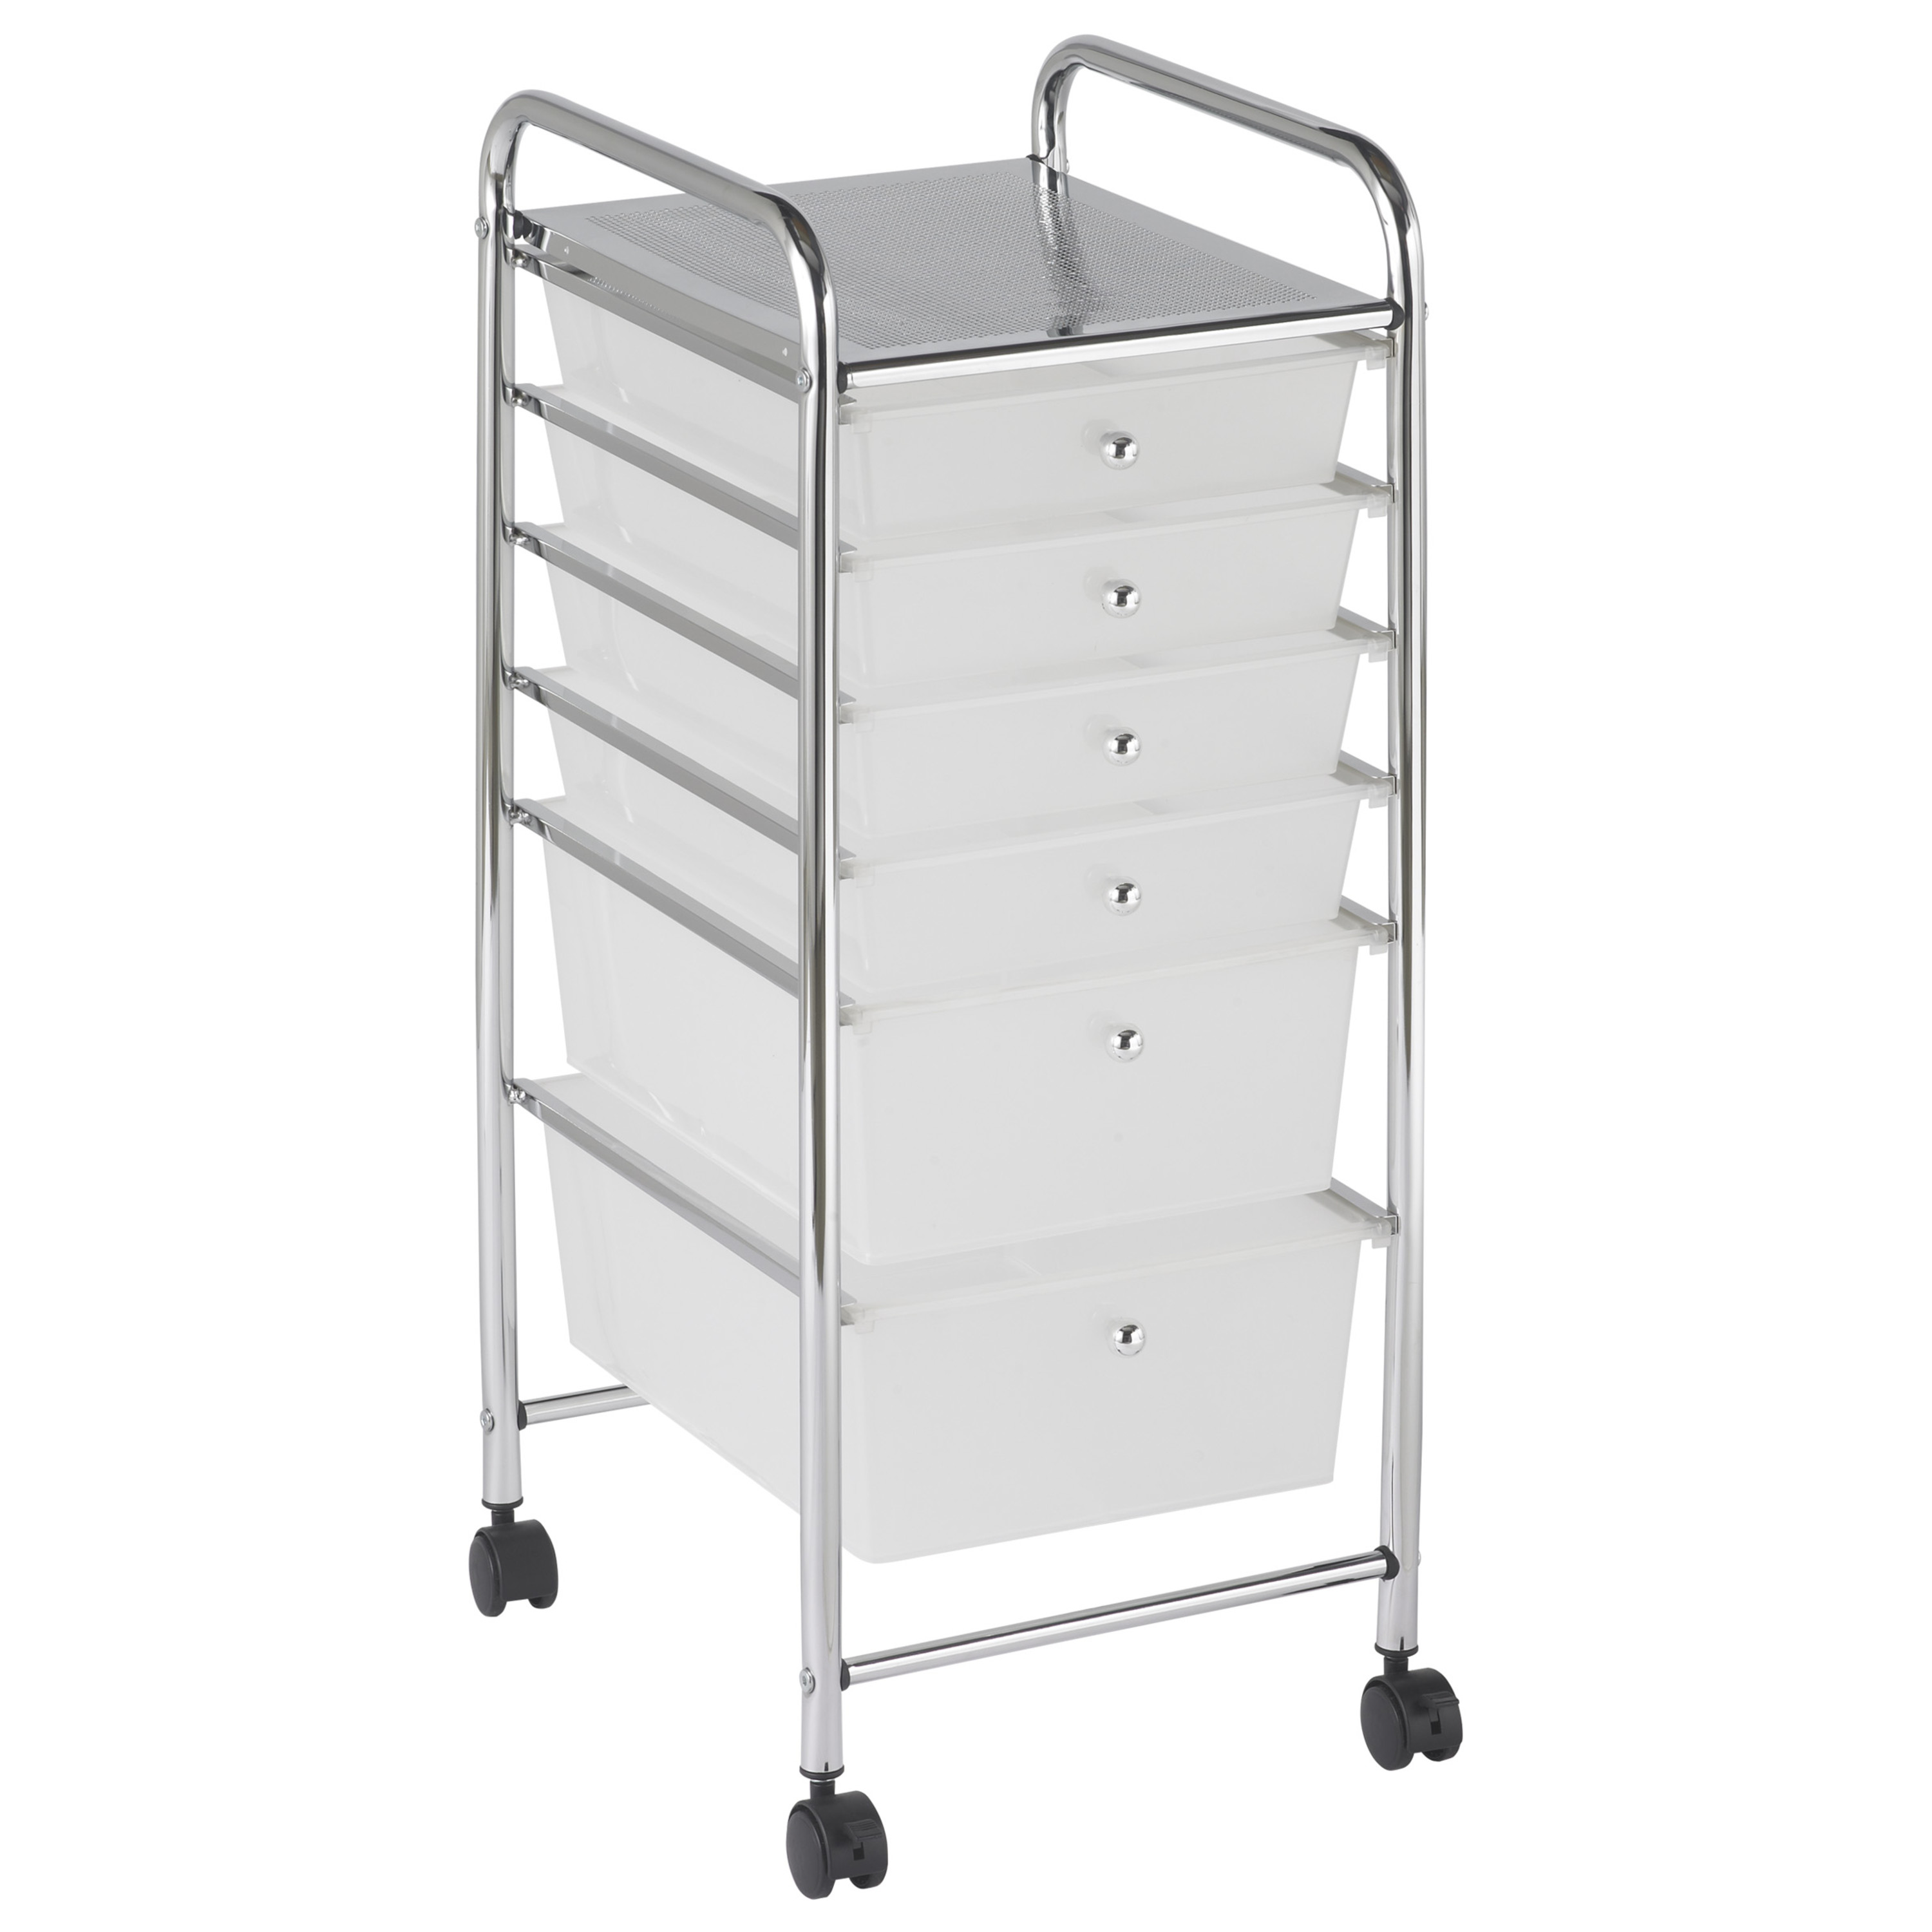 6 Drawer Mobile Organizer - Grayscale